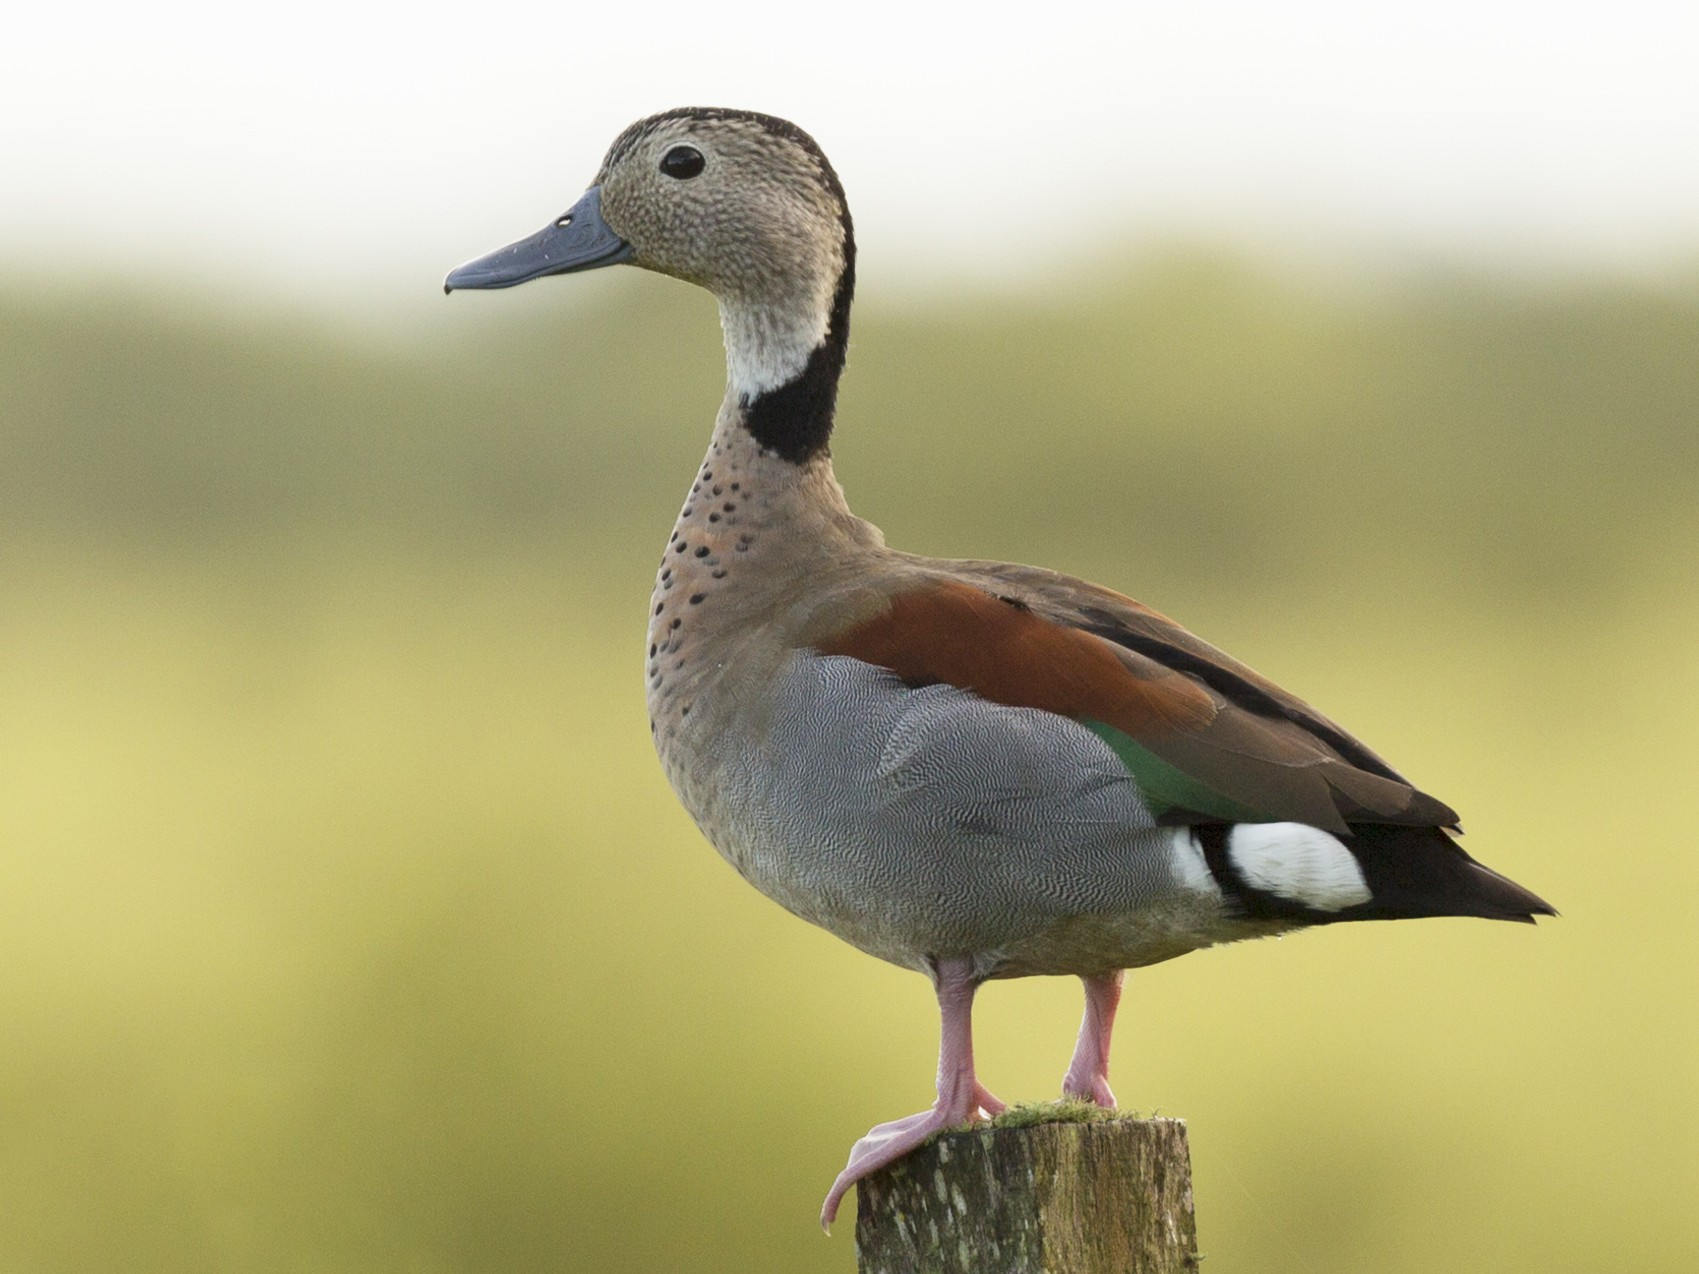 Ringed Teal - Gonzalo Campaña Fourcade